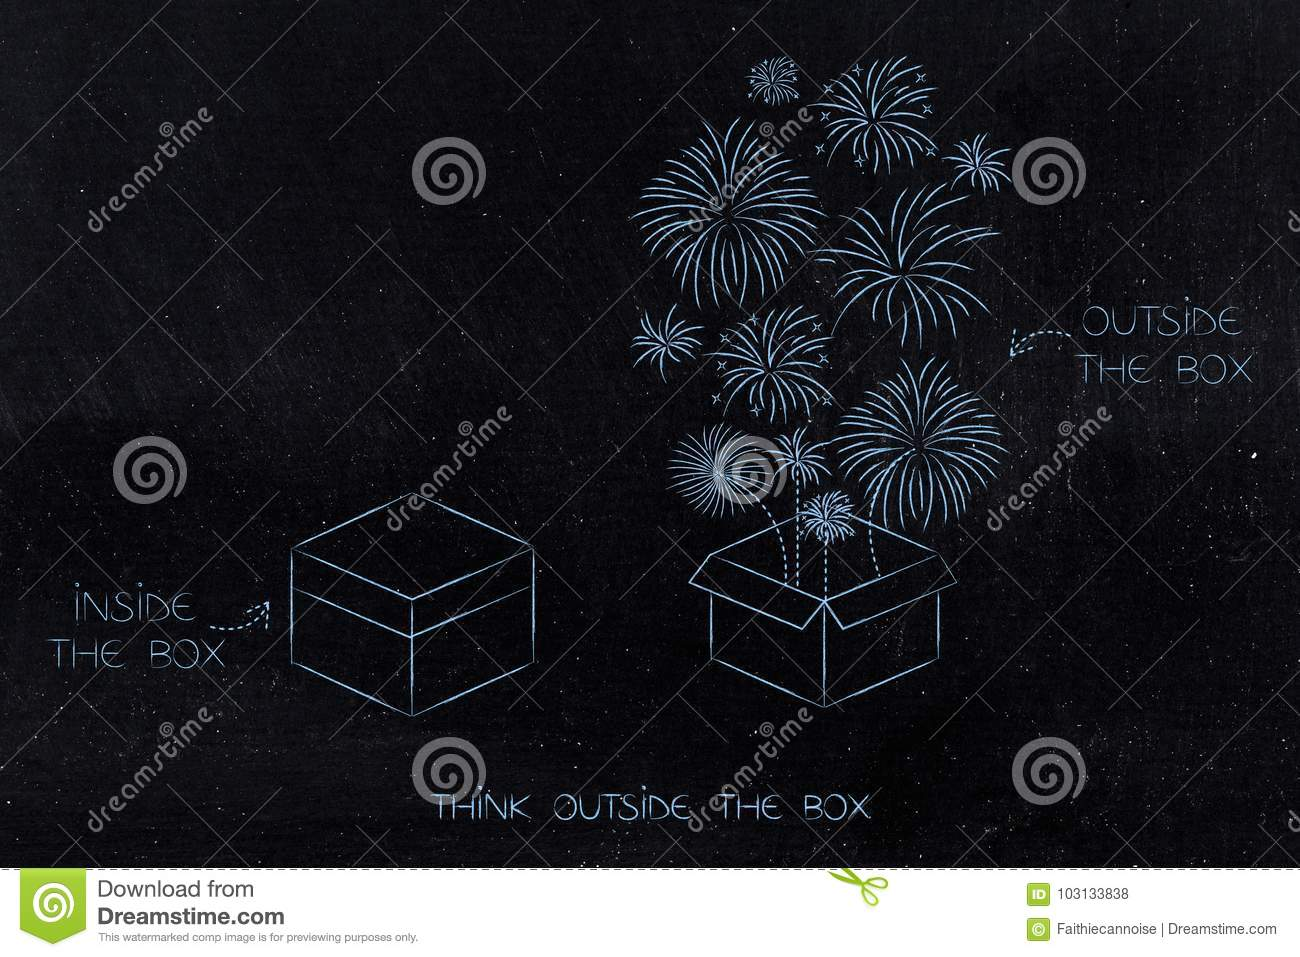 hight resolution of think outside the box conceptual illustration inside and outside comparison with fireworks flying out